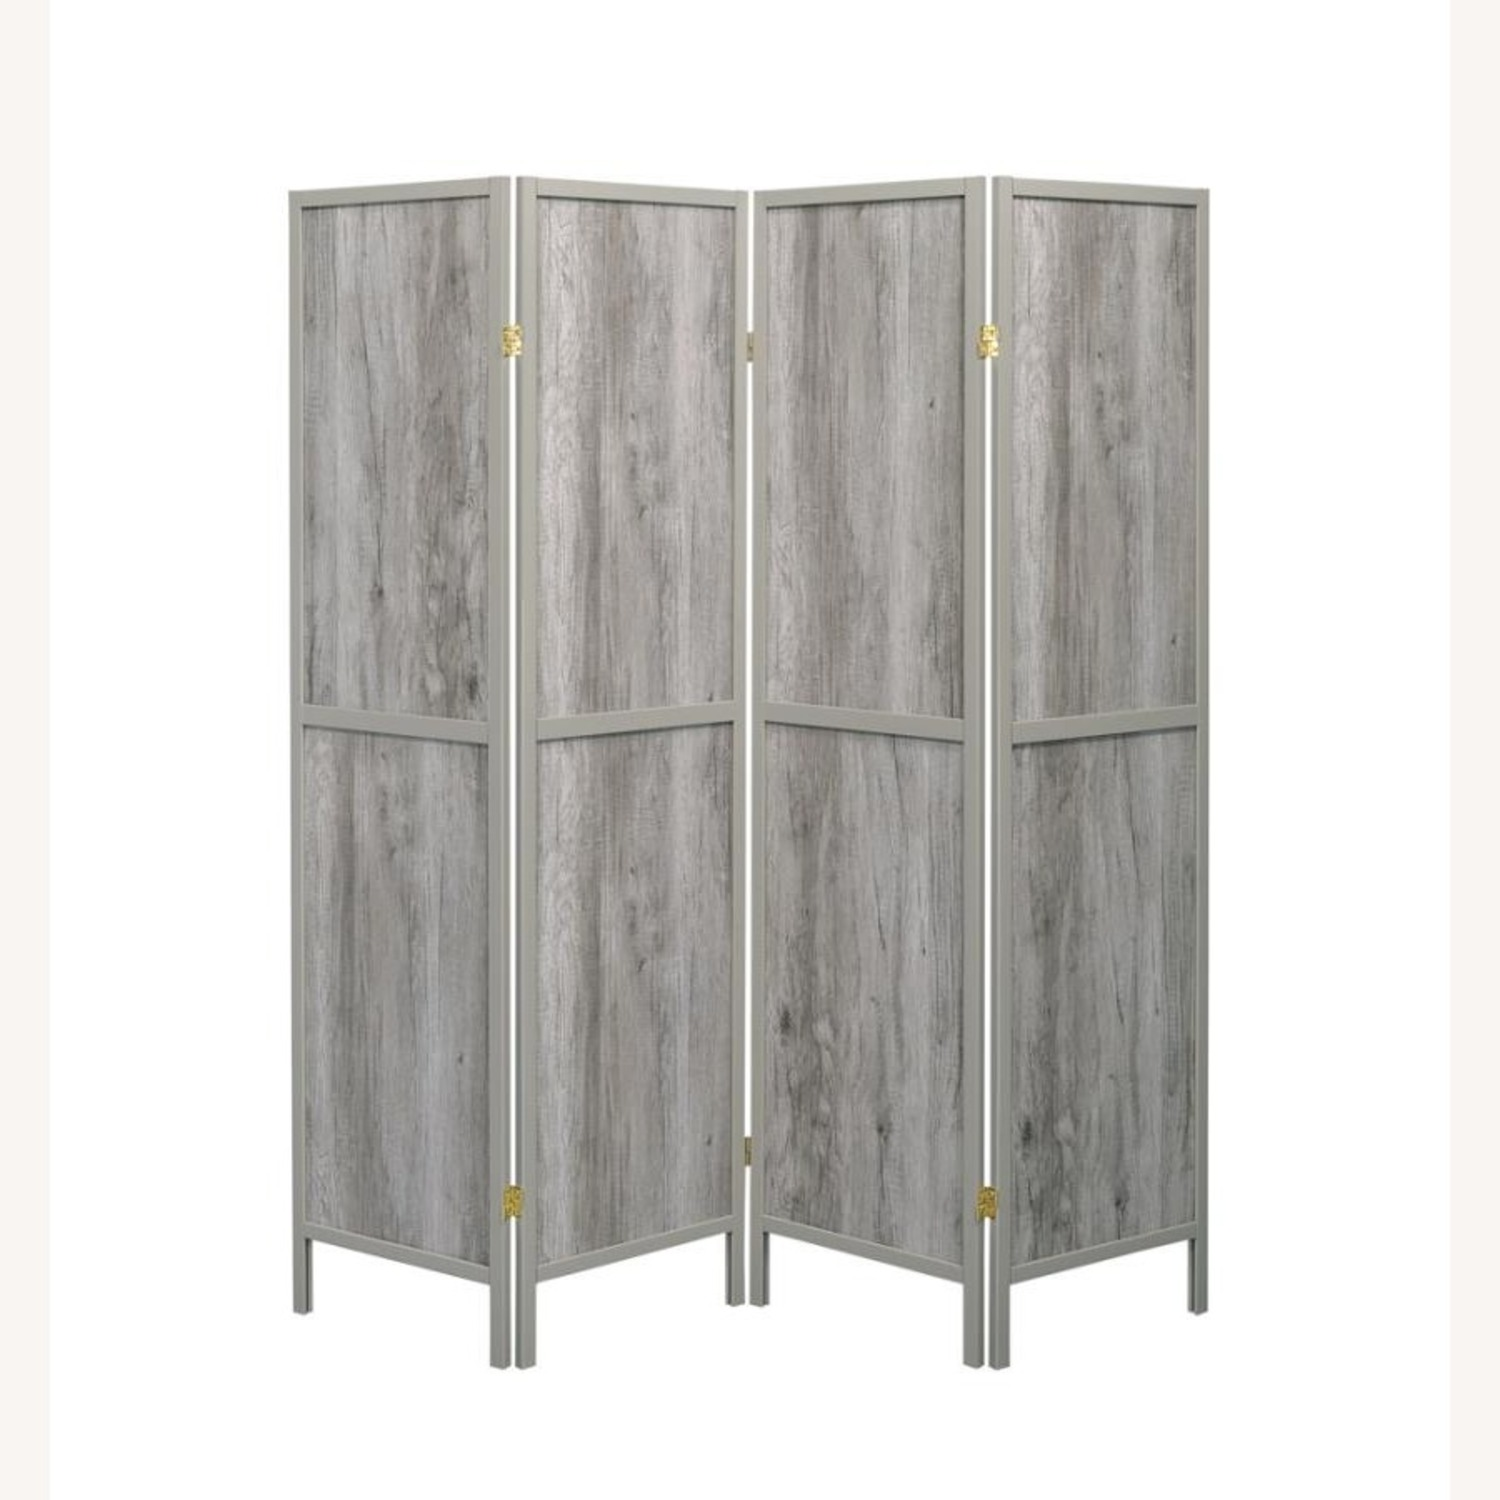 4-Panel Screen In Grey Driftwood & Grey Wood Frame - image-2